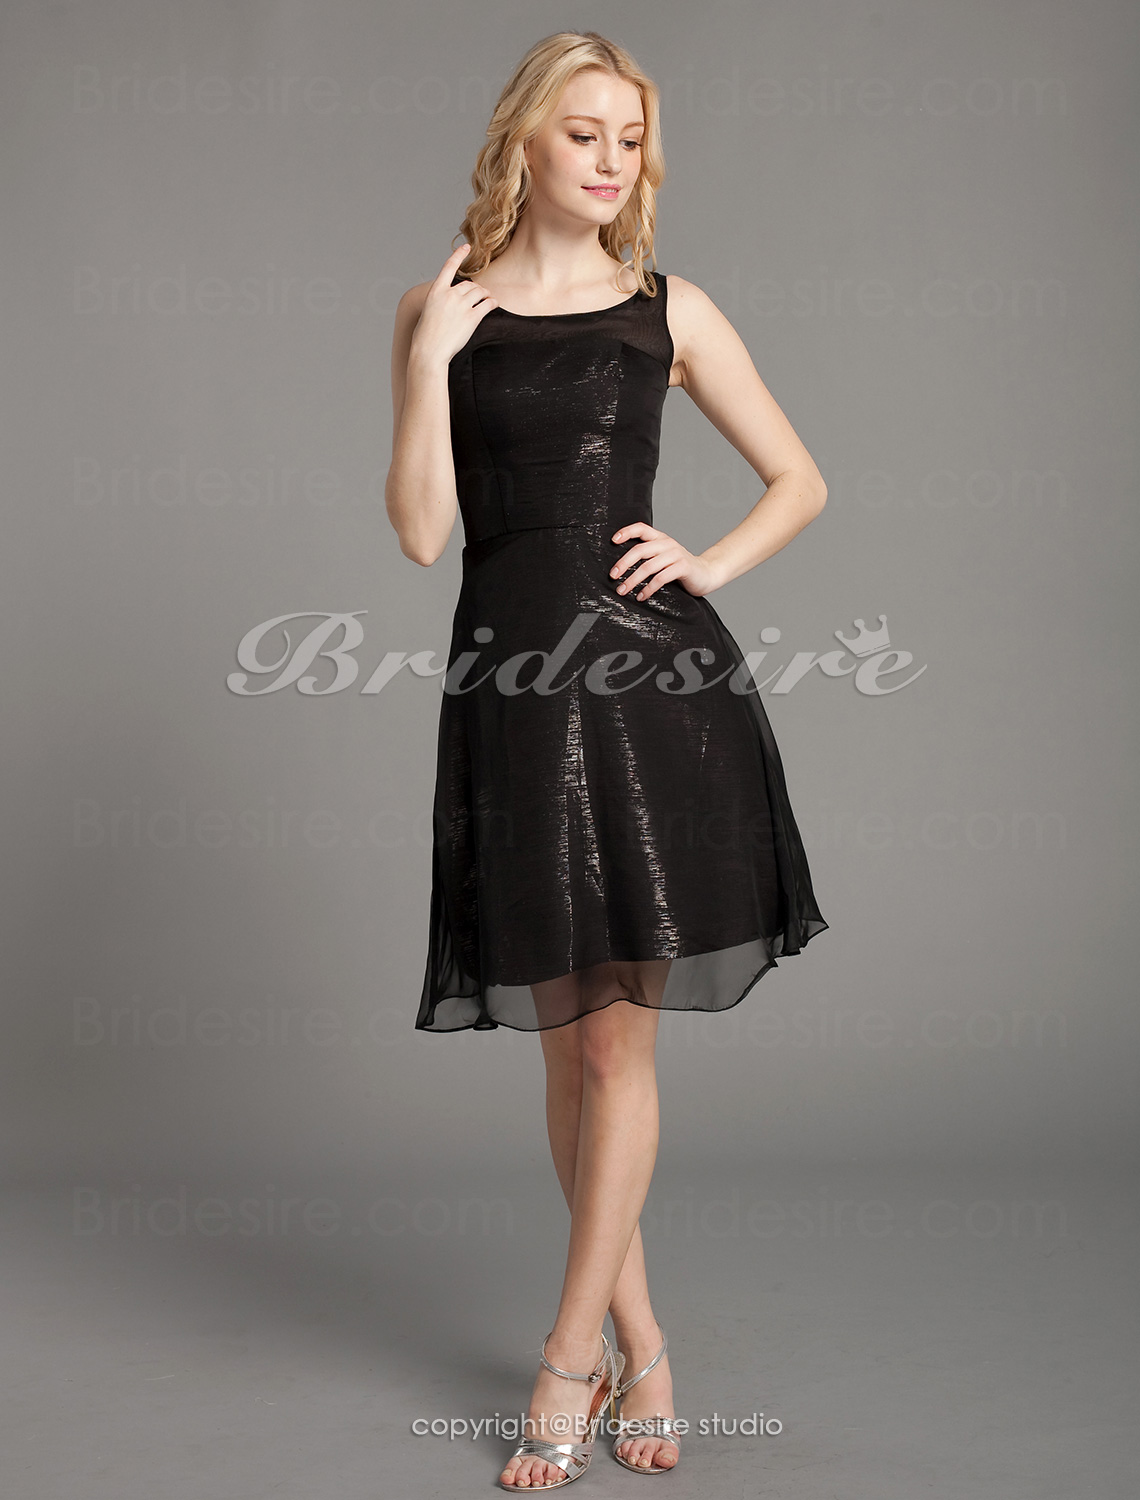 A-line Knee-length Straps Satin Chiffon Cocktail Dress